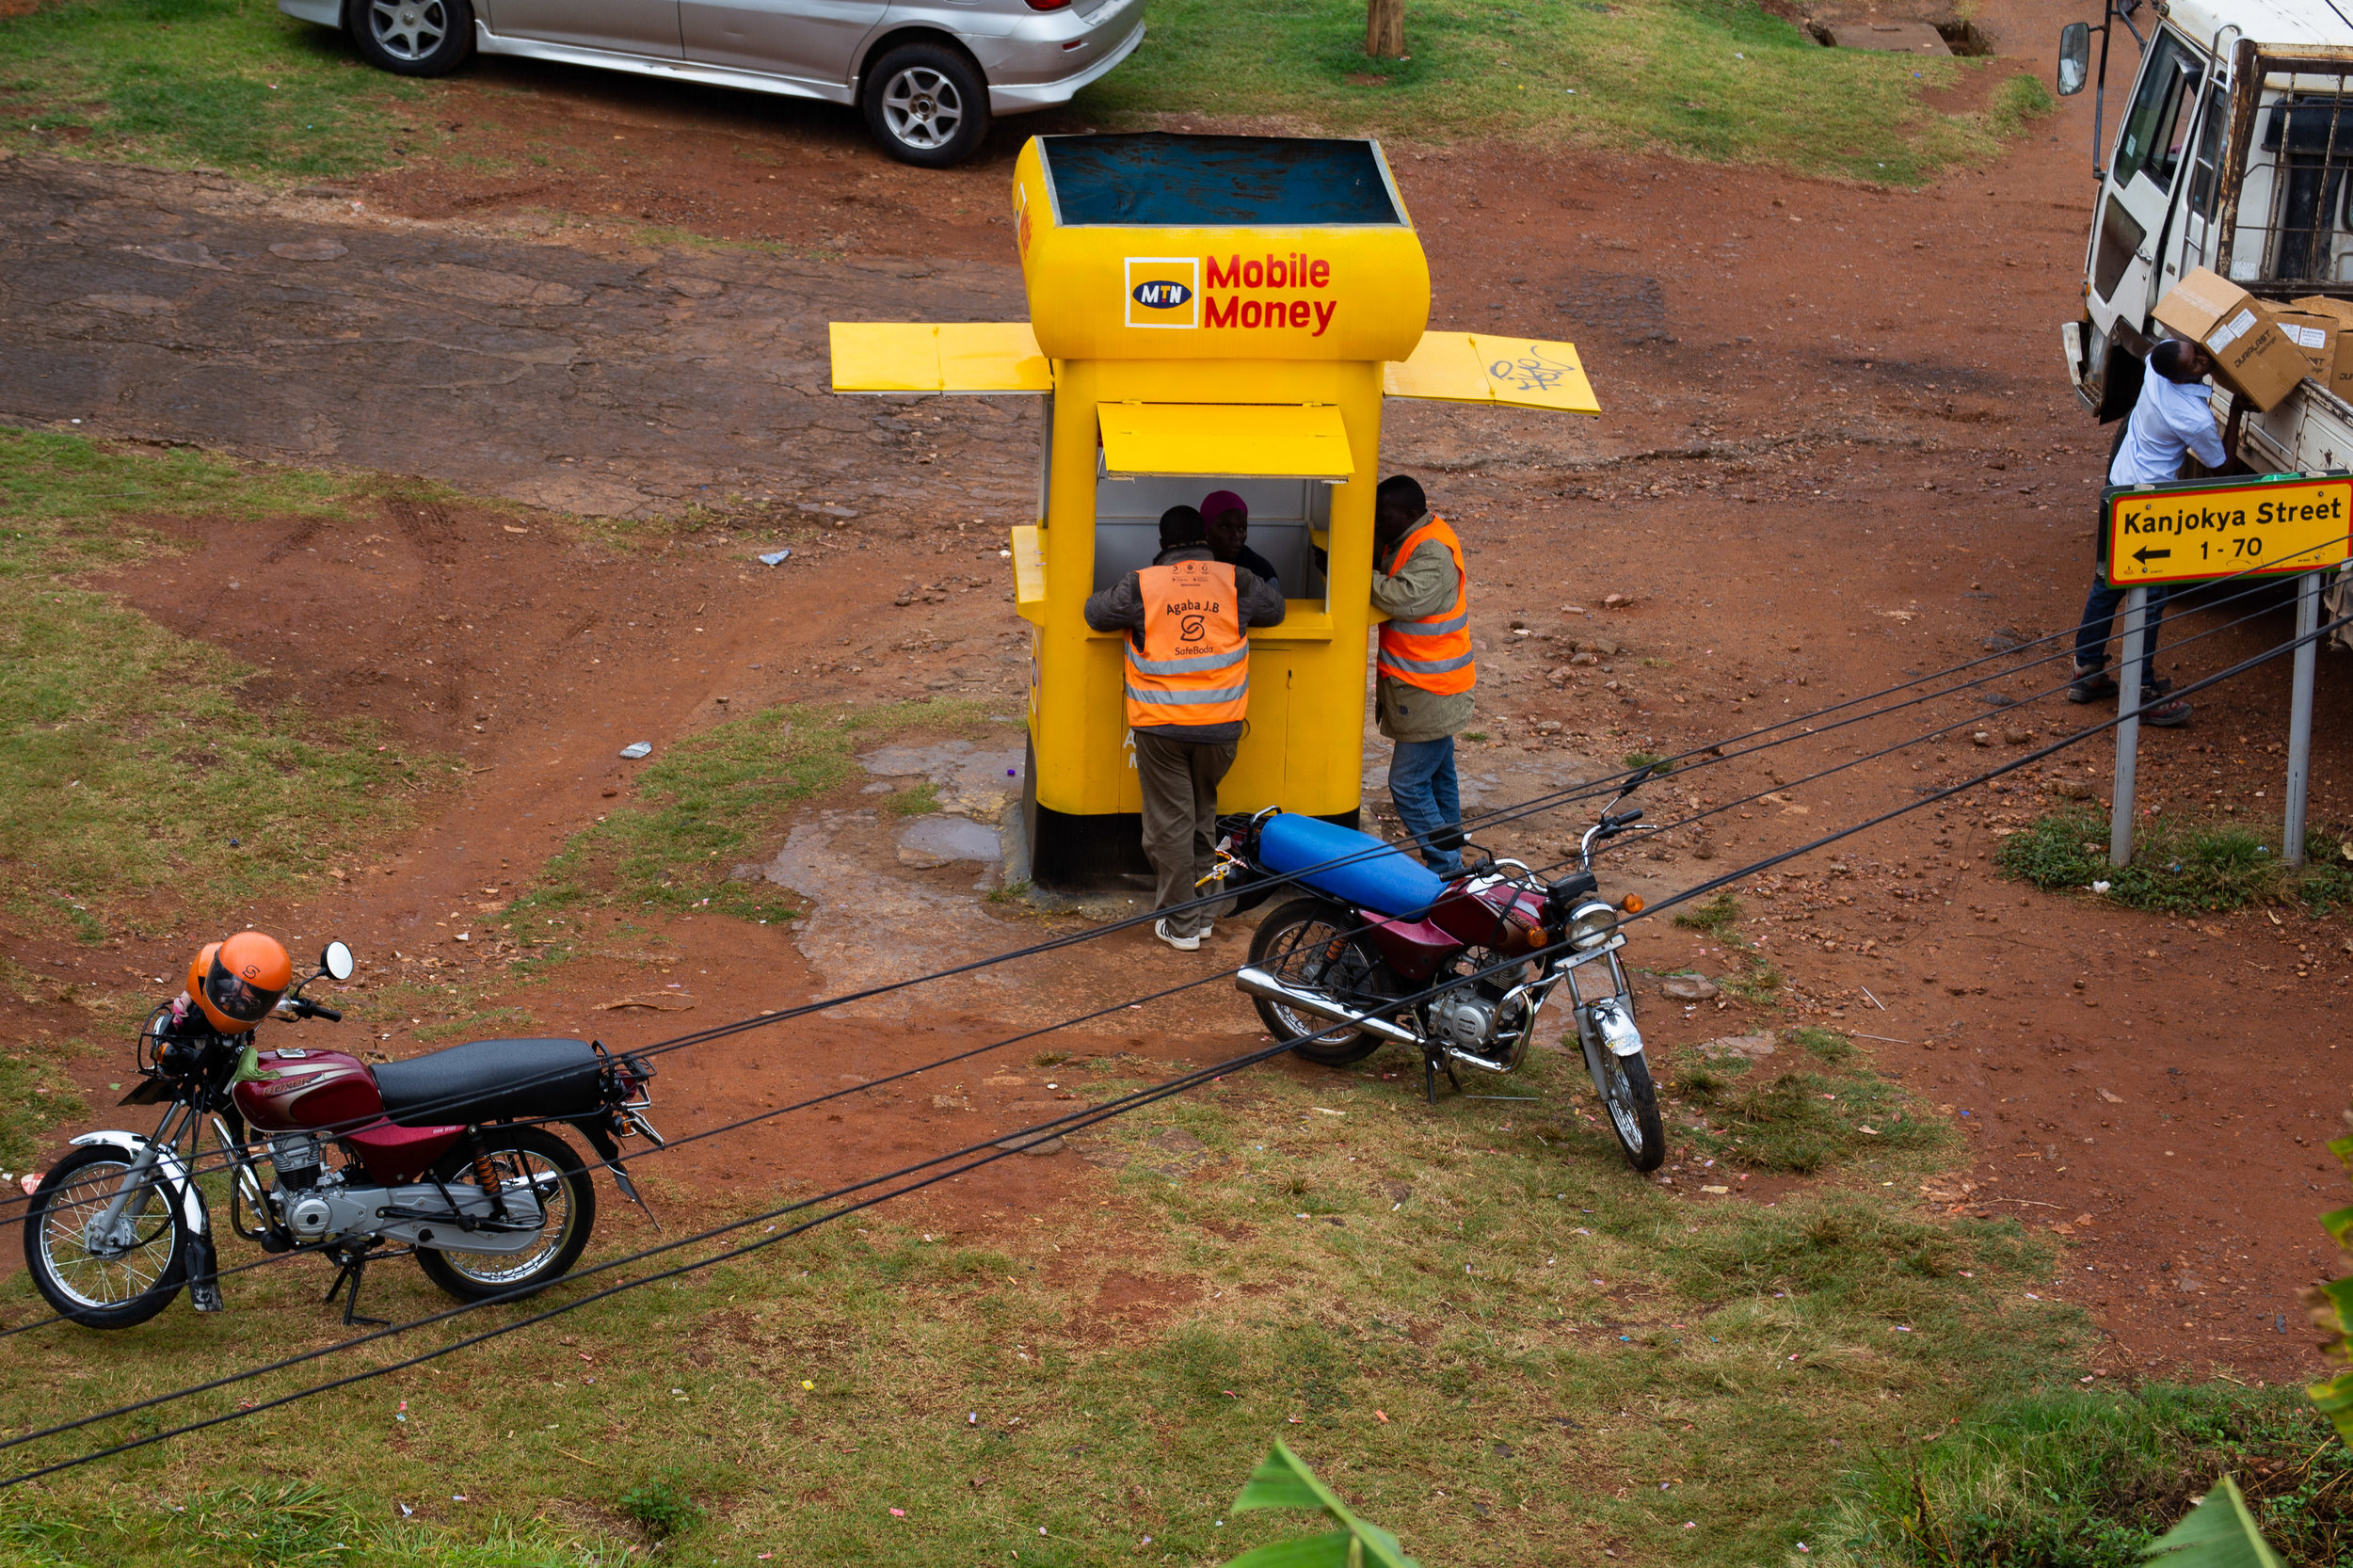 MTN Mobile Money station and SafeBoda riders by Kanjokya Street, Kisementi